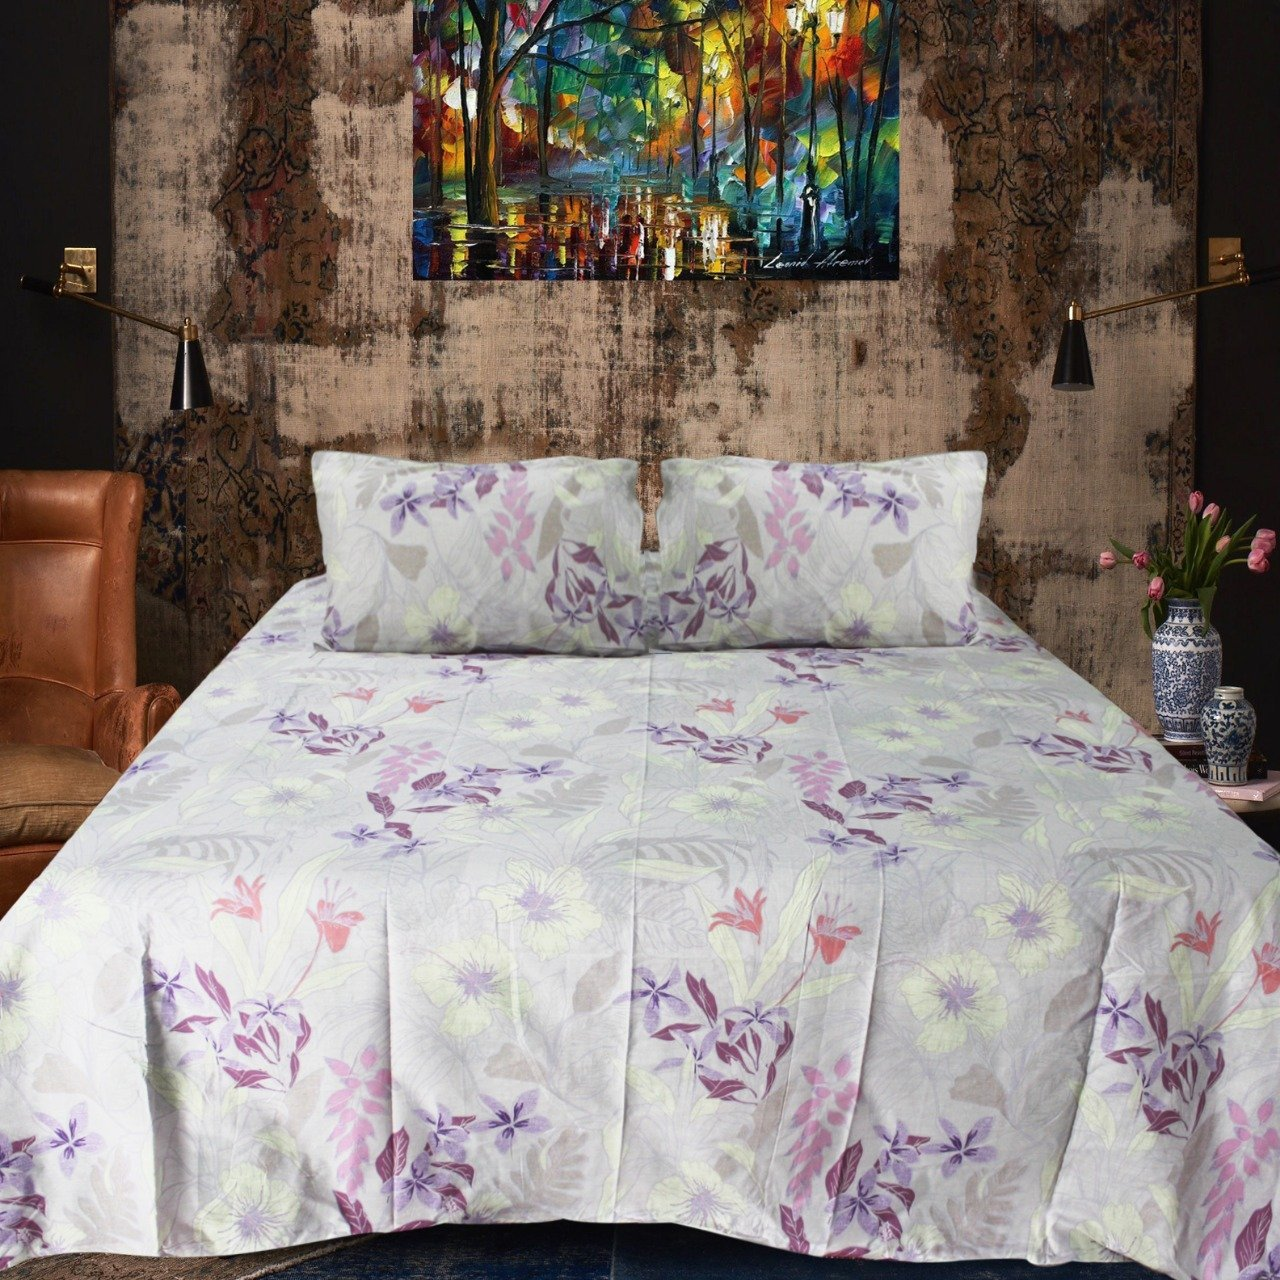 Export Quality Cotton Double Bed Sheet With 2 Pillow cases